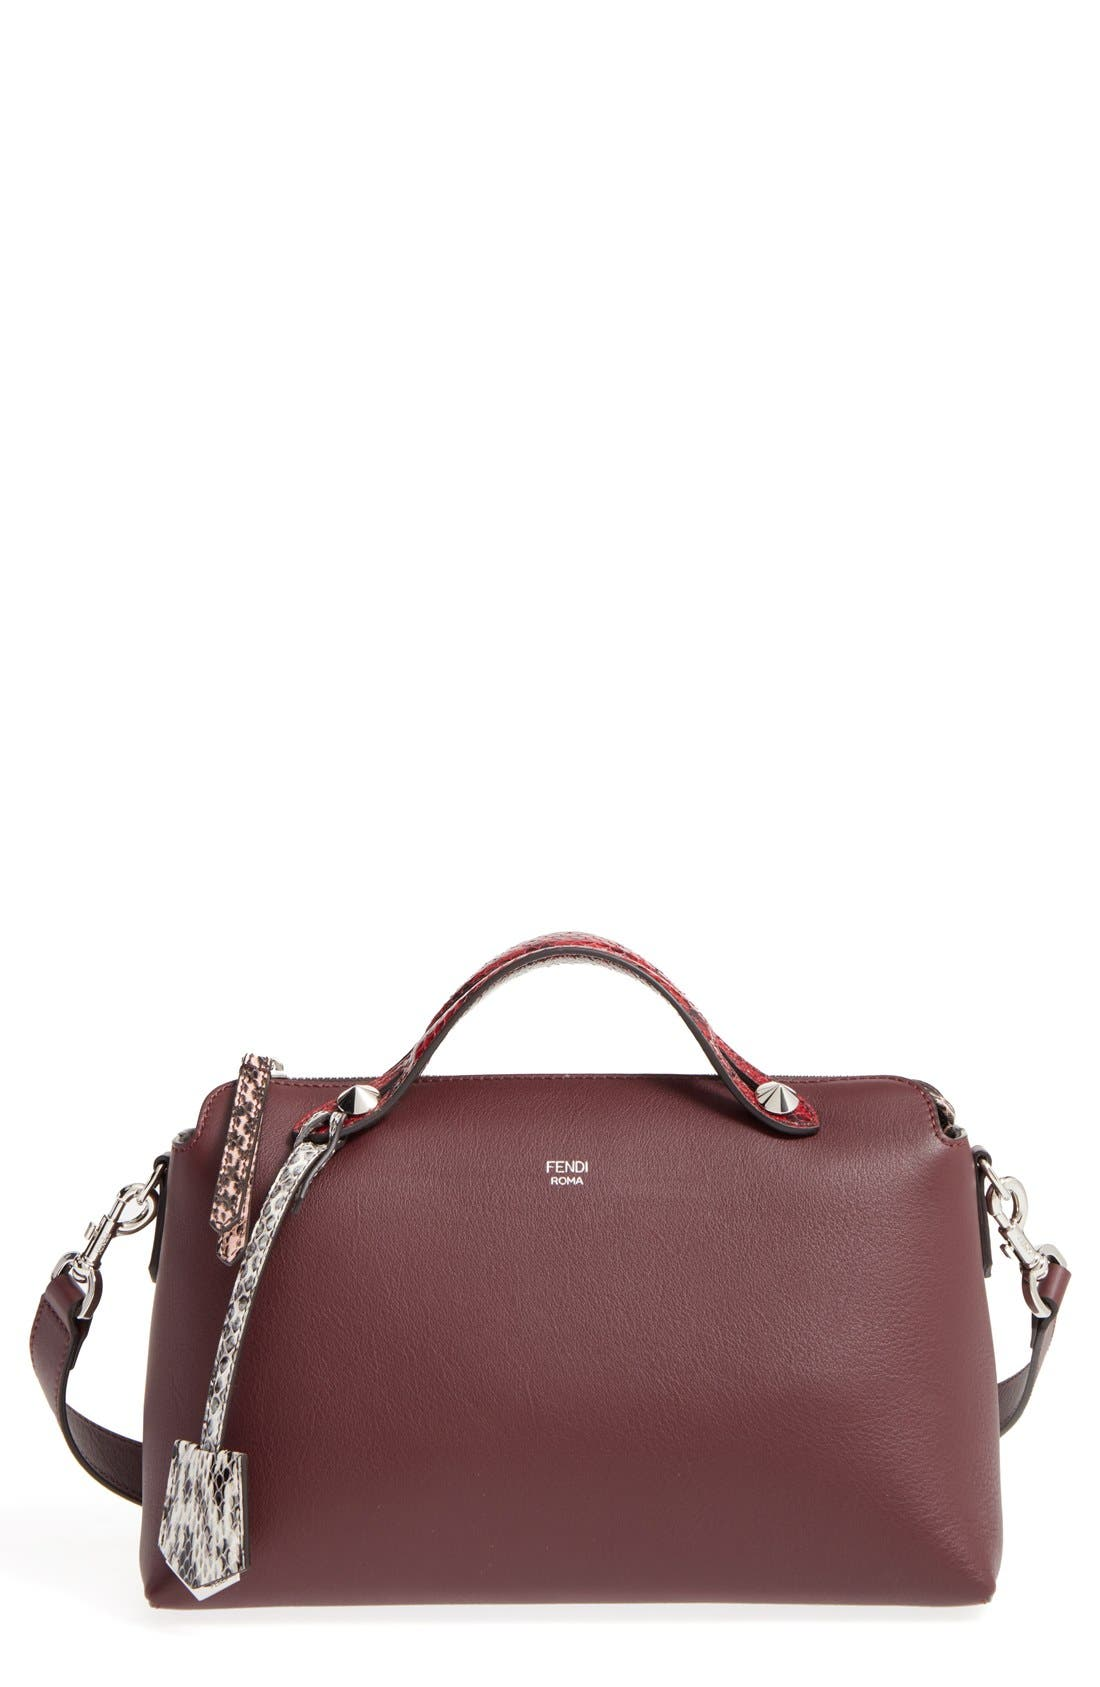 FENDI 'Medium By the Way' Calfskin Leather Shoulder